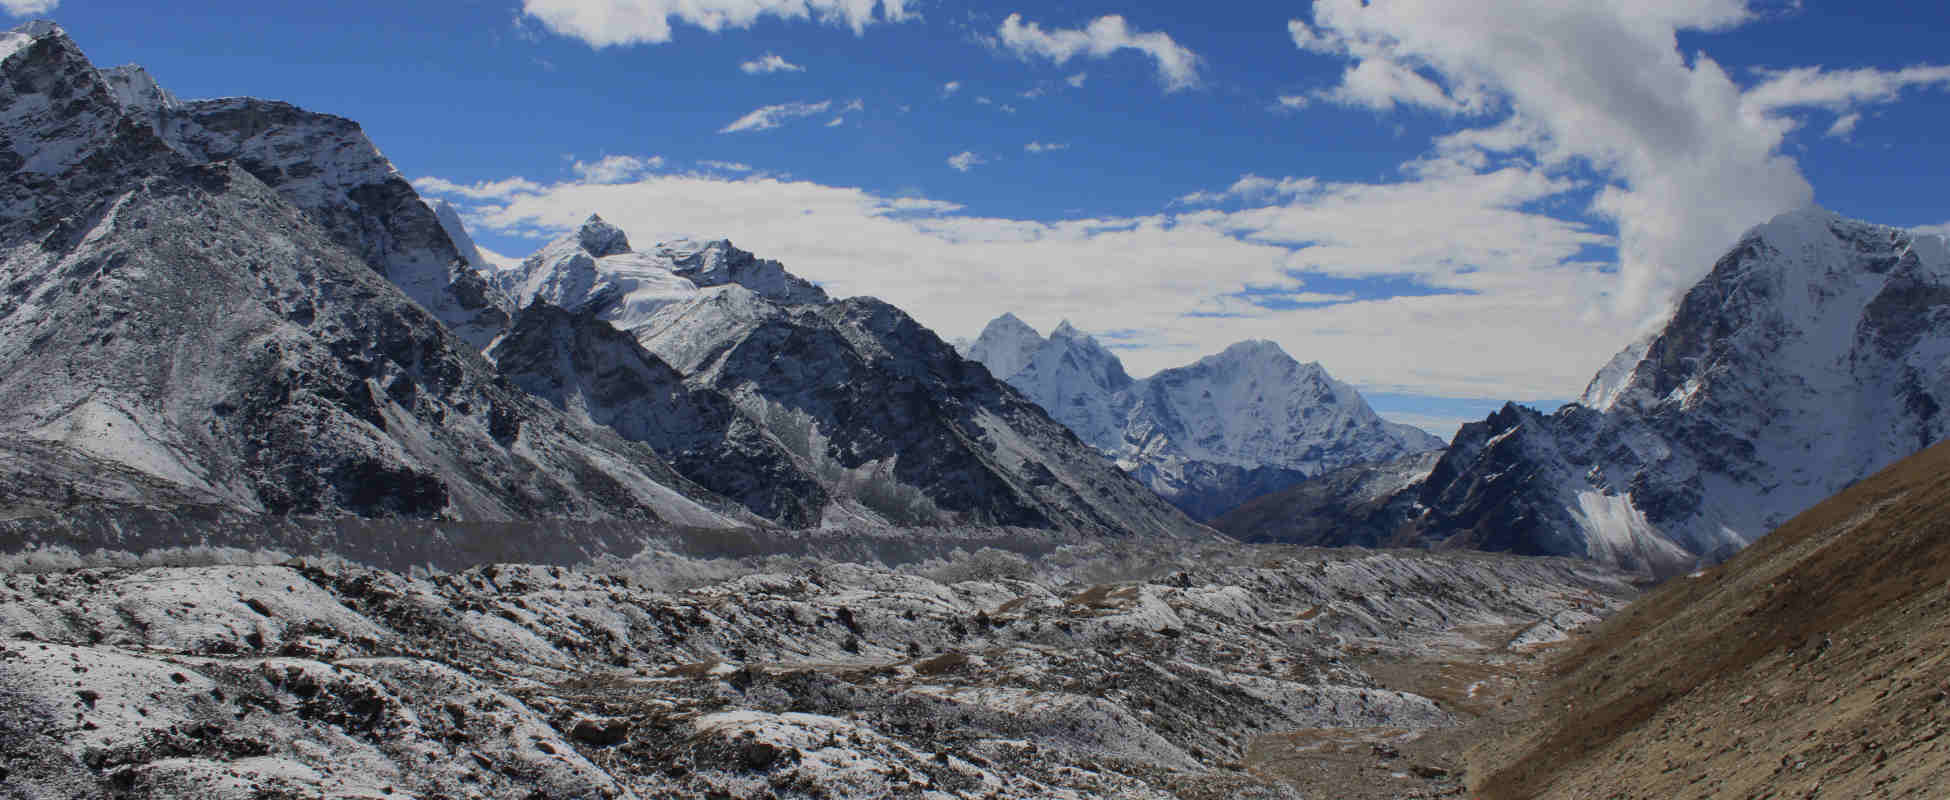 Khumbu-Valley-Trek